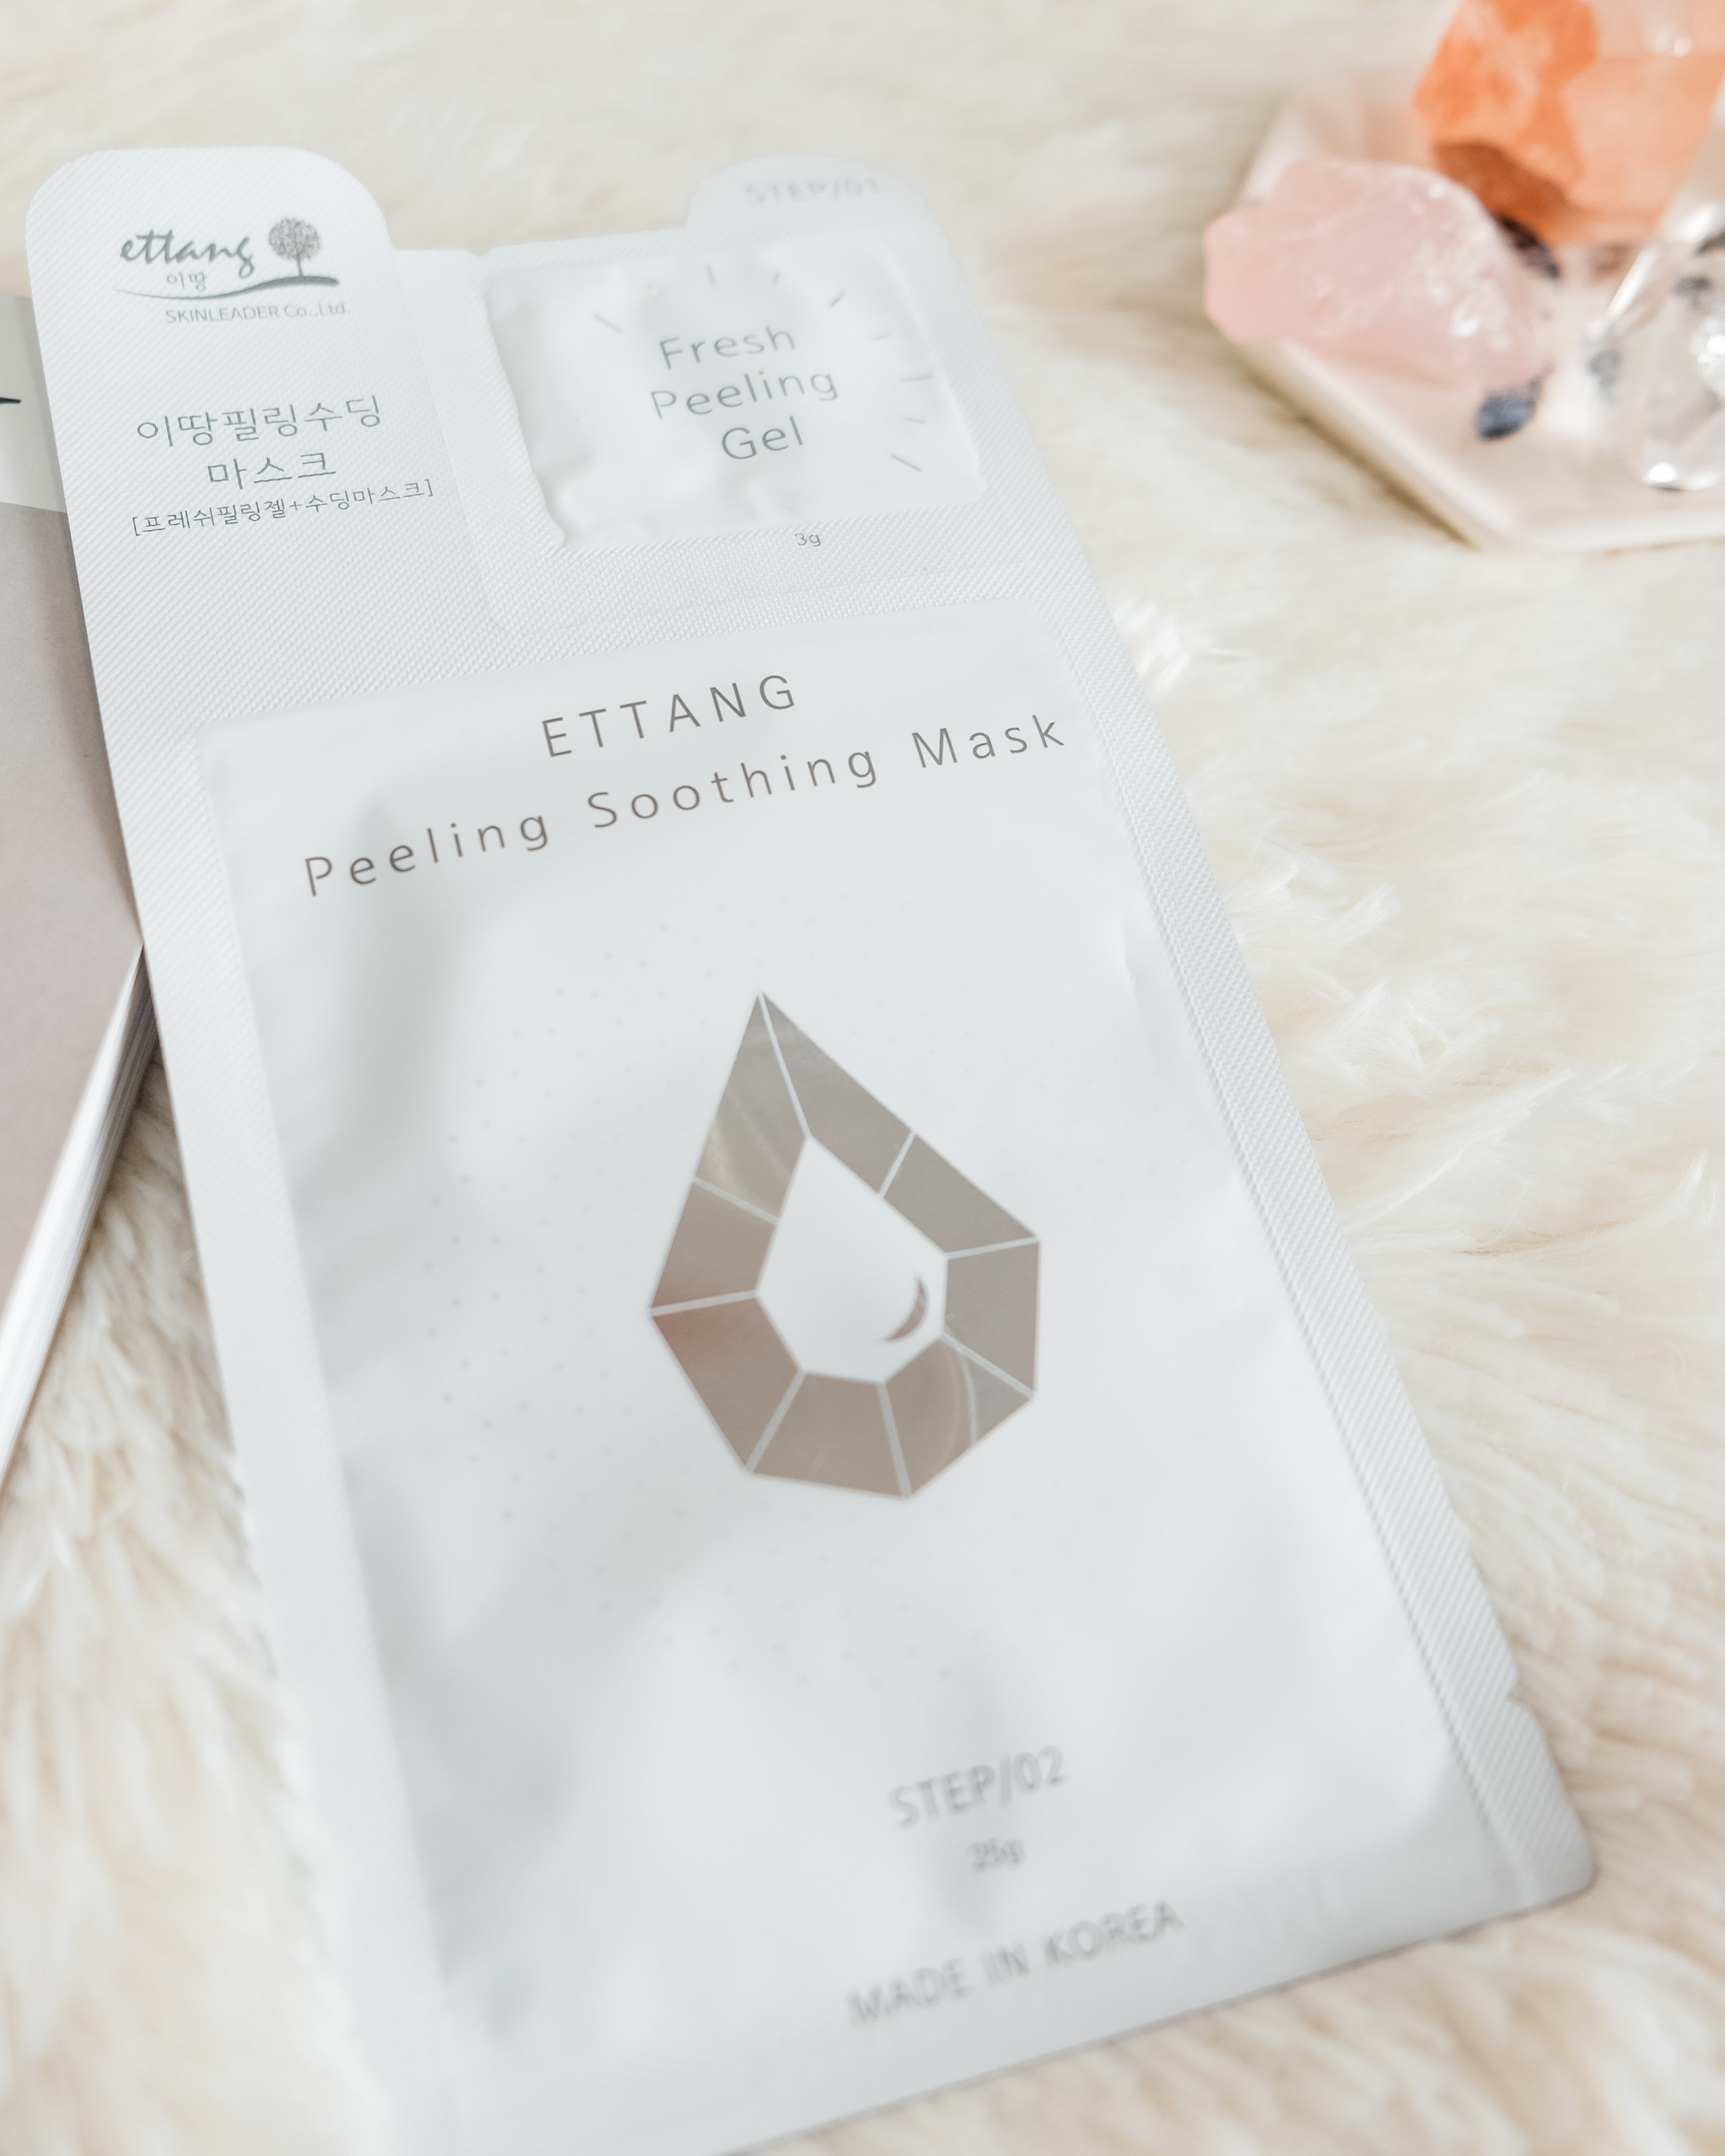 Ettang Two-Step Peeling Mask